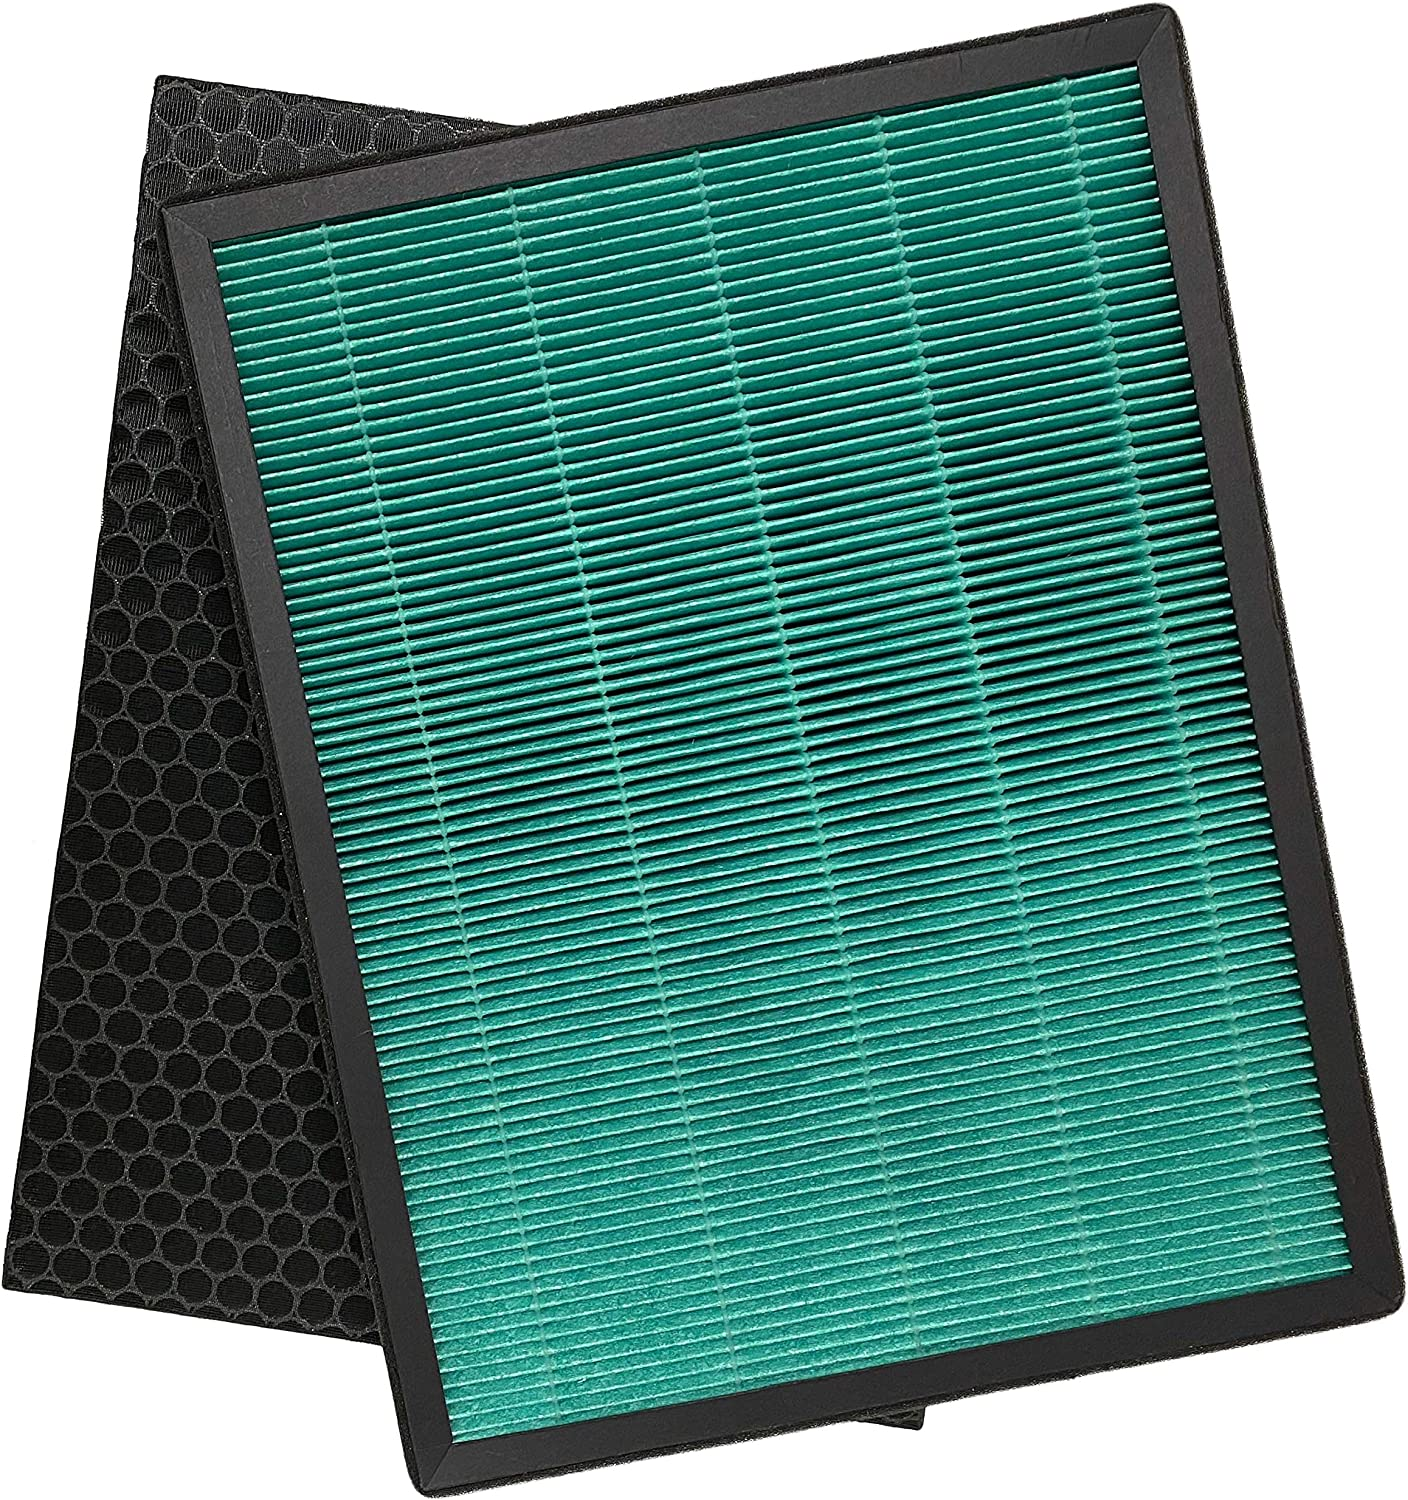 Nispira True HEPA Filter + Activated Carbon Pre Filter Kit Set Replacement Compatible with Rabbit Air BioGS 2.0 Ultra Quiet Air Purifier Model SPA-550A and SPA-625A, 1 Pack